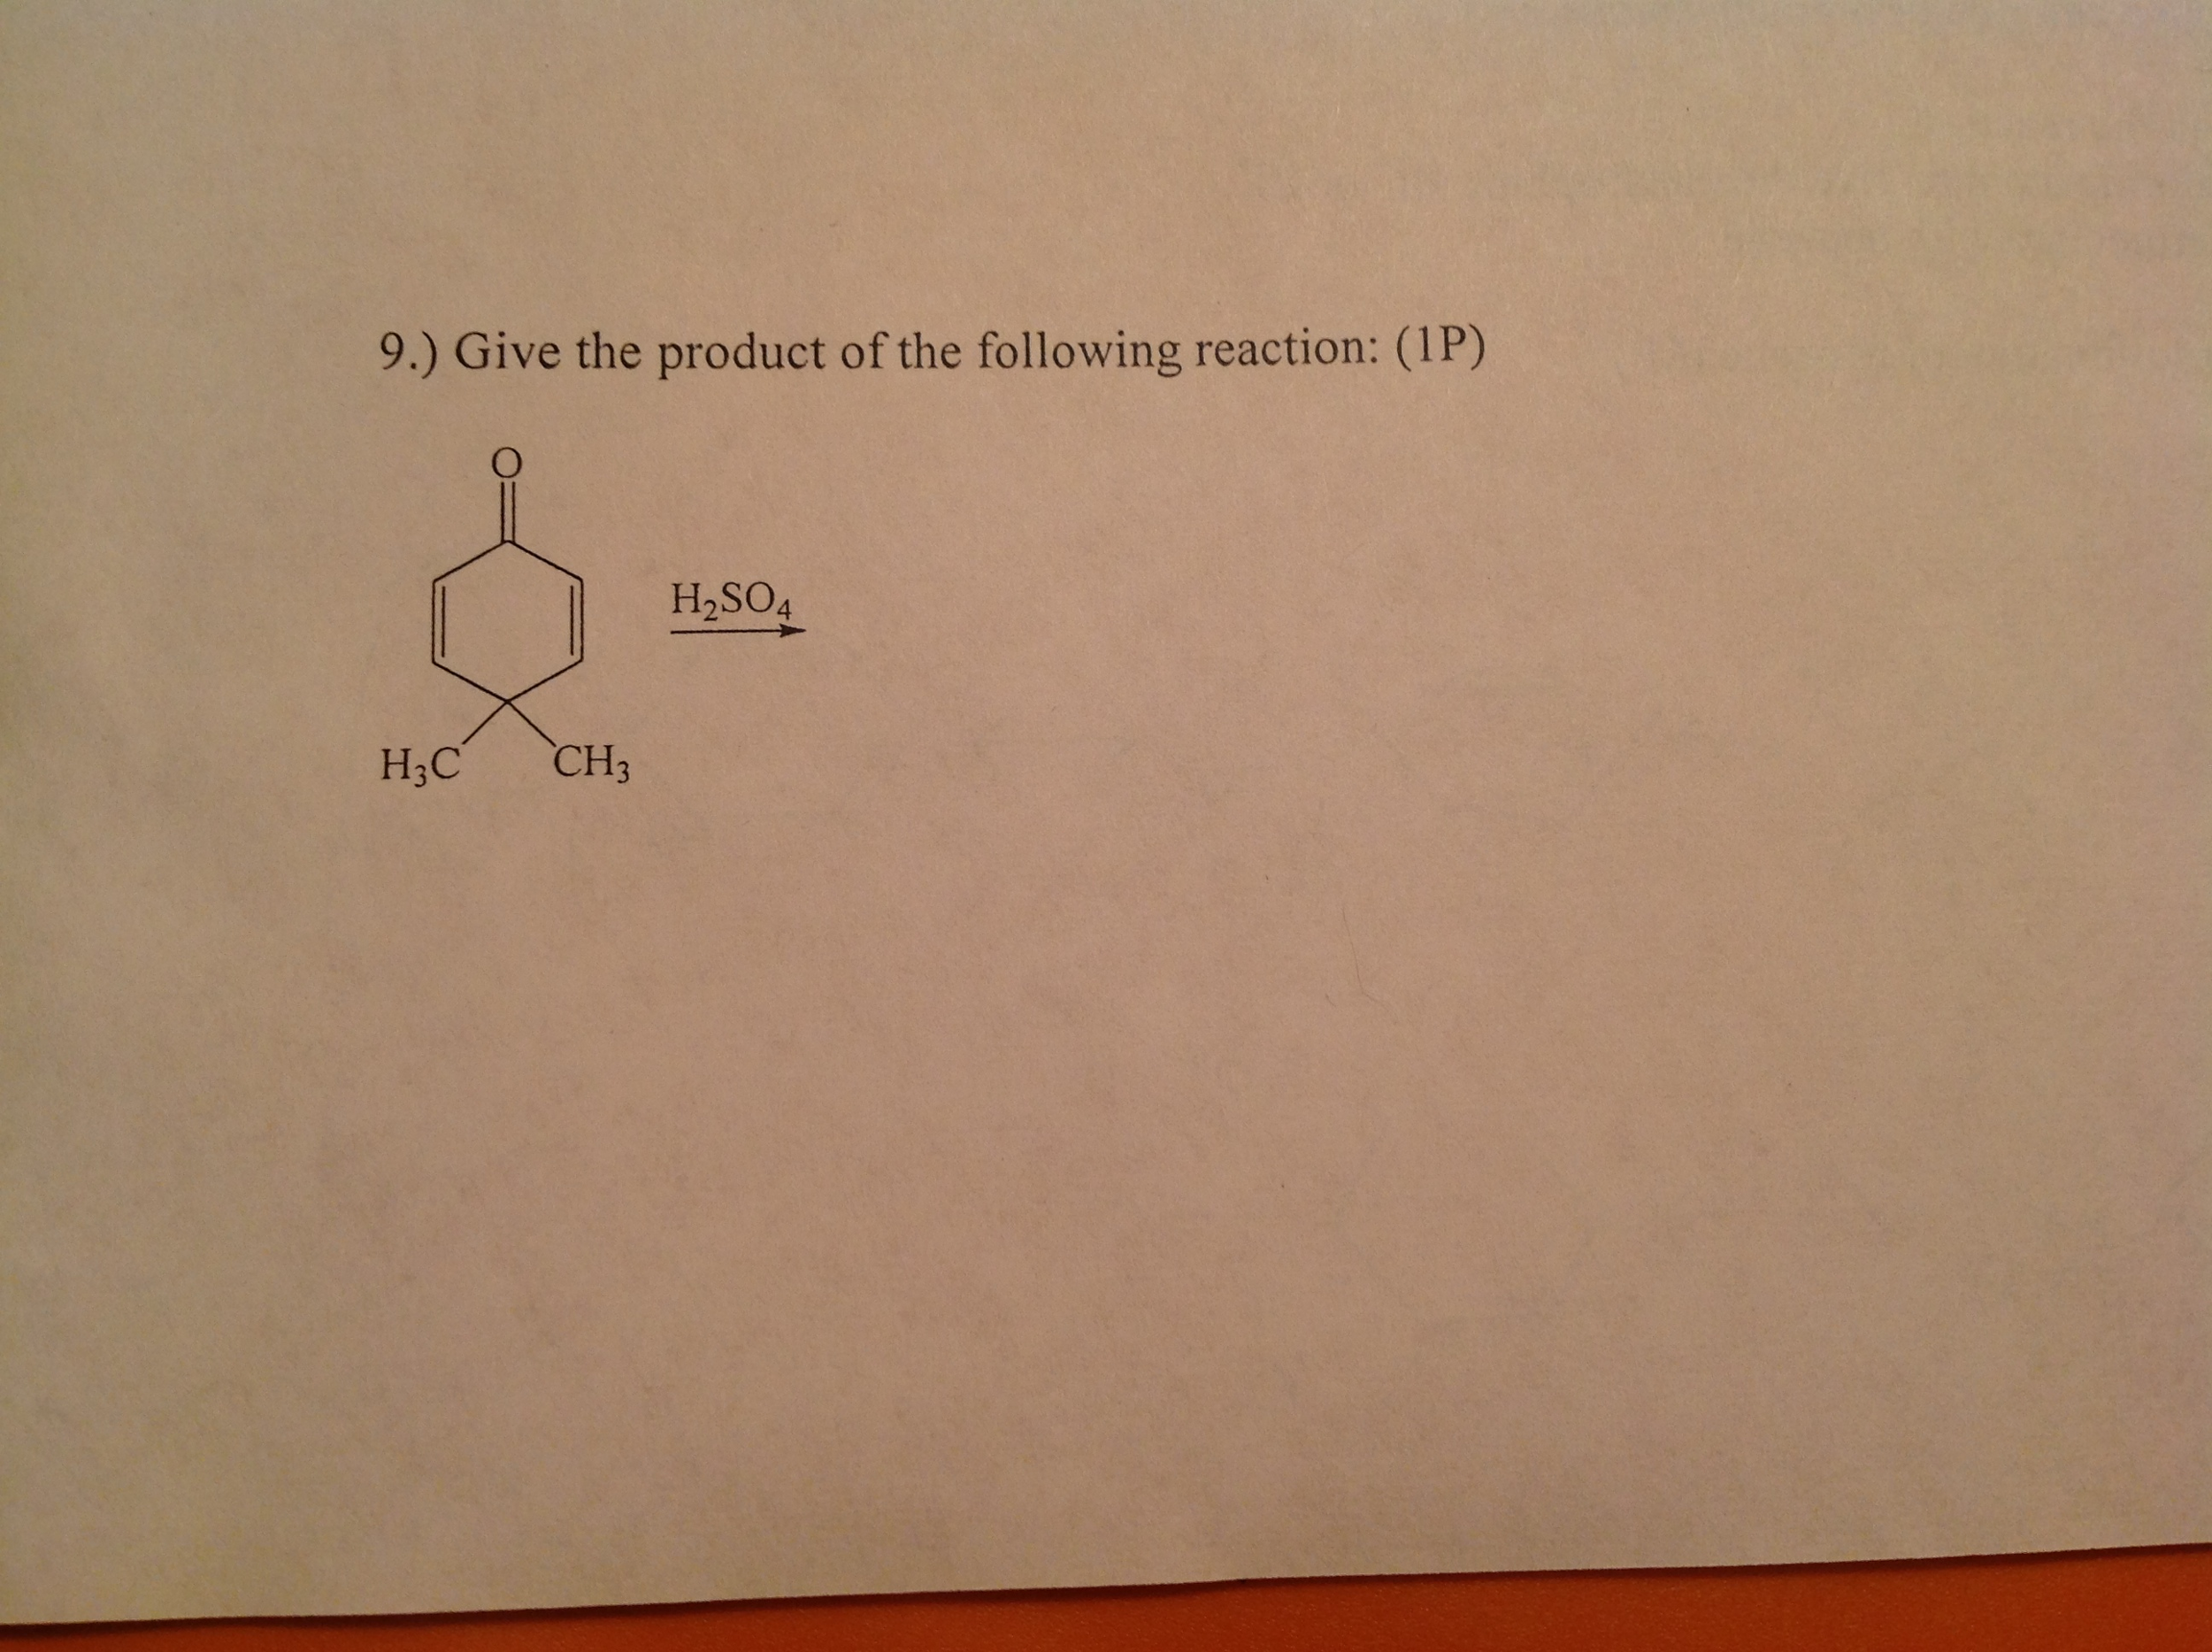 Give the product of the following reaction: (IP)